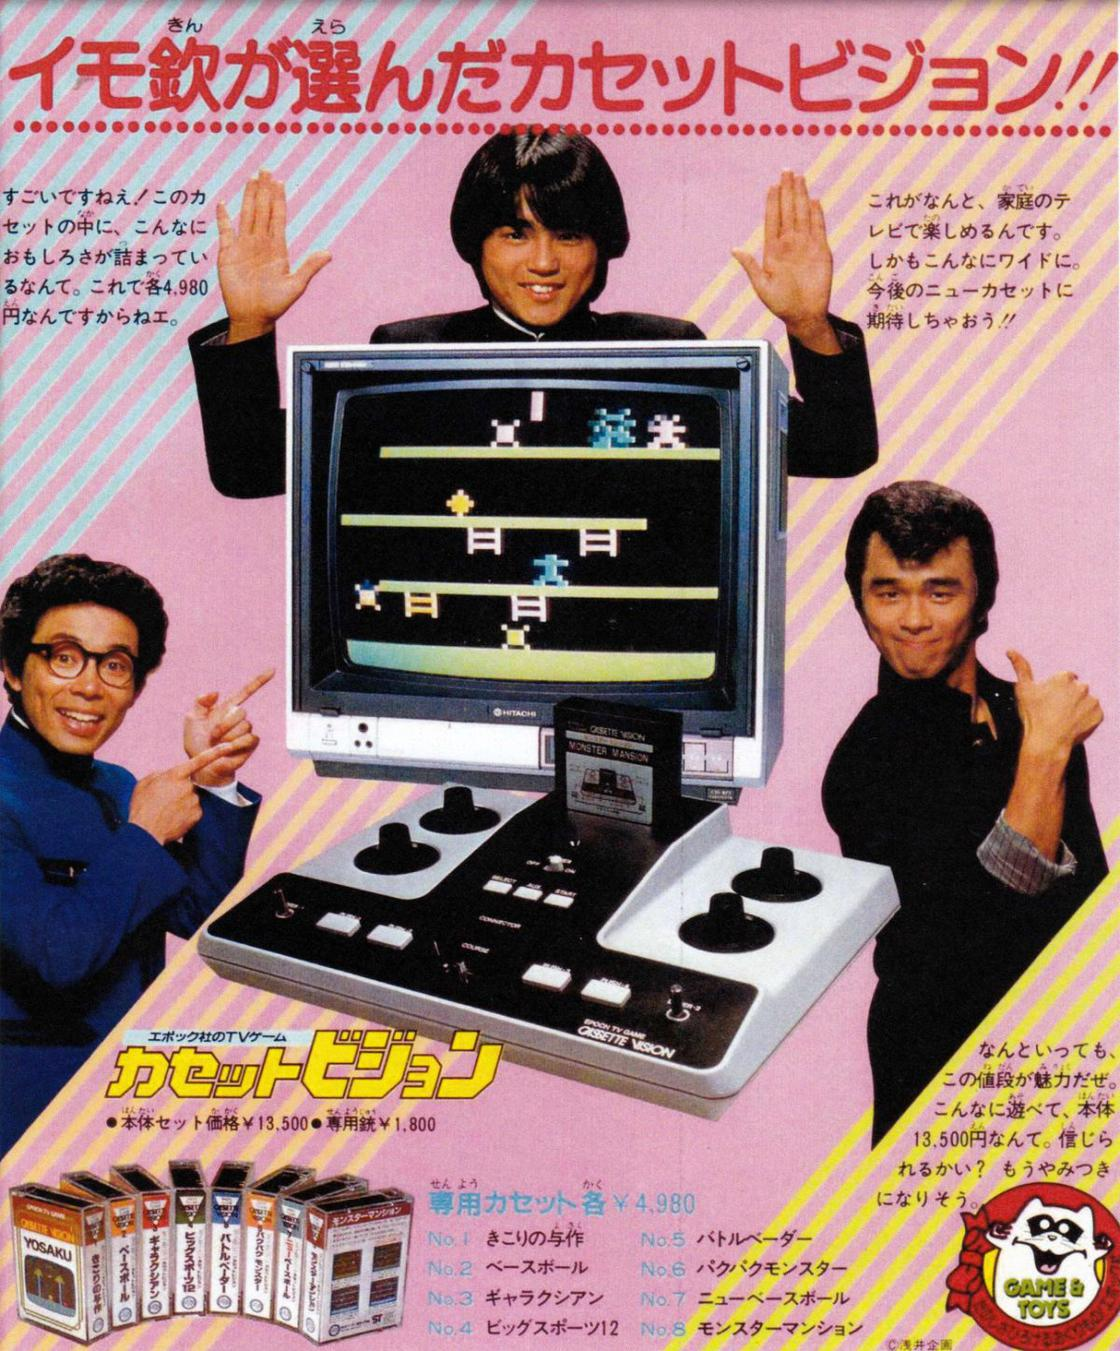 publicites-japonaises-jeux-video-1980-13.jpg